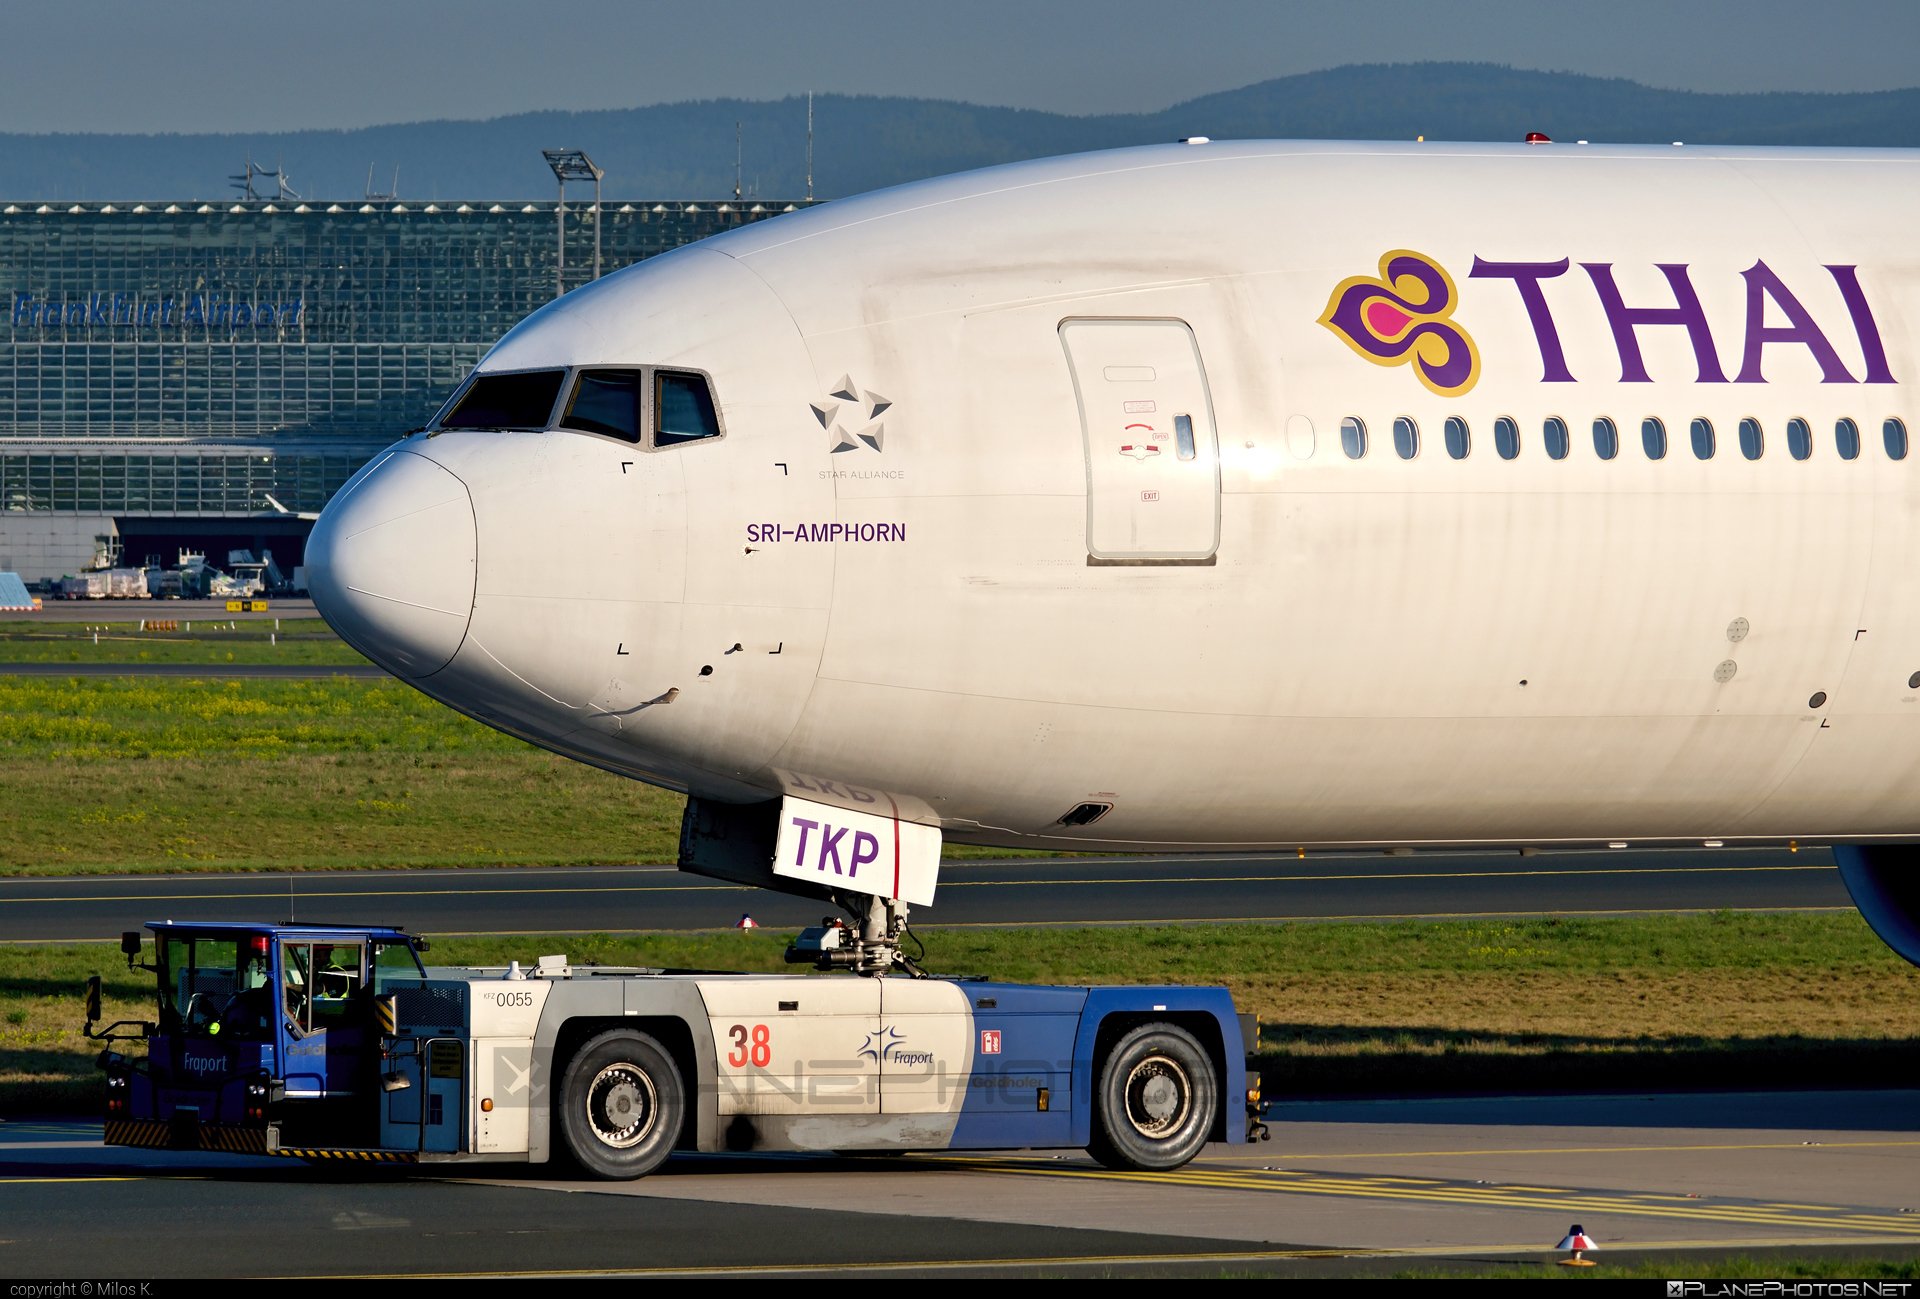 Boeing 777-300ER - HS-TKP operated by Thai Airways #b777 #b777er #boeing #boeing777 #thaiairways #tripleseven